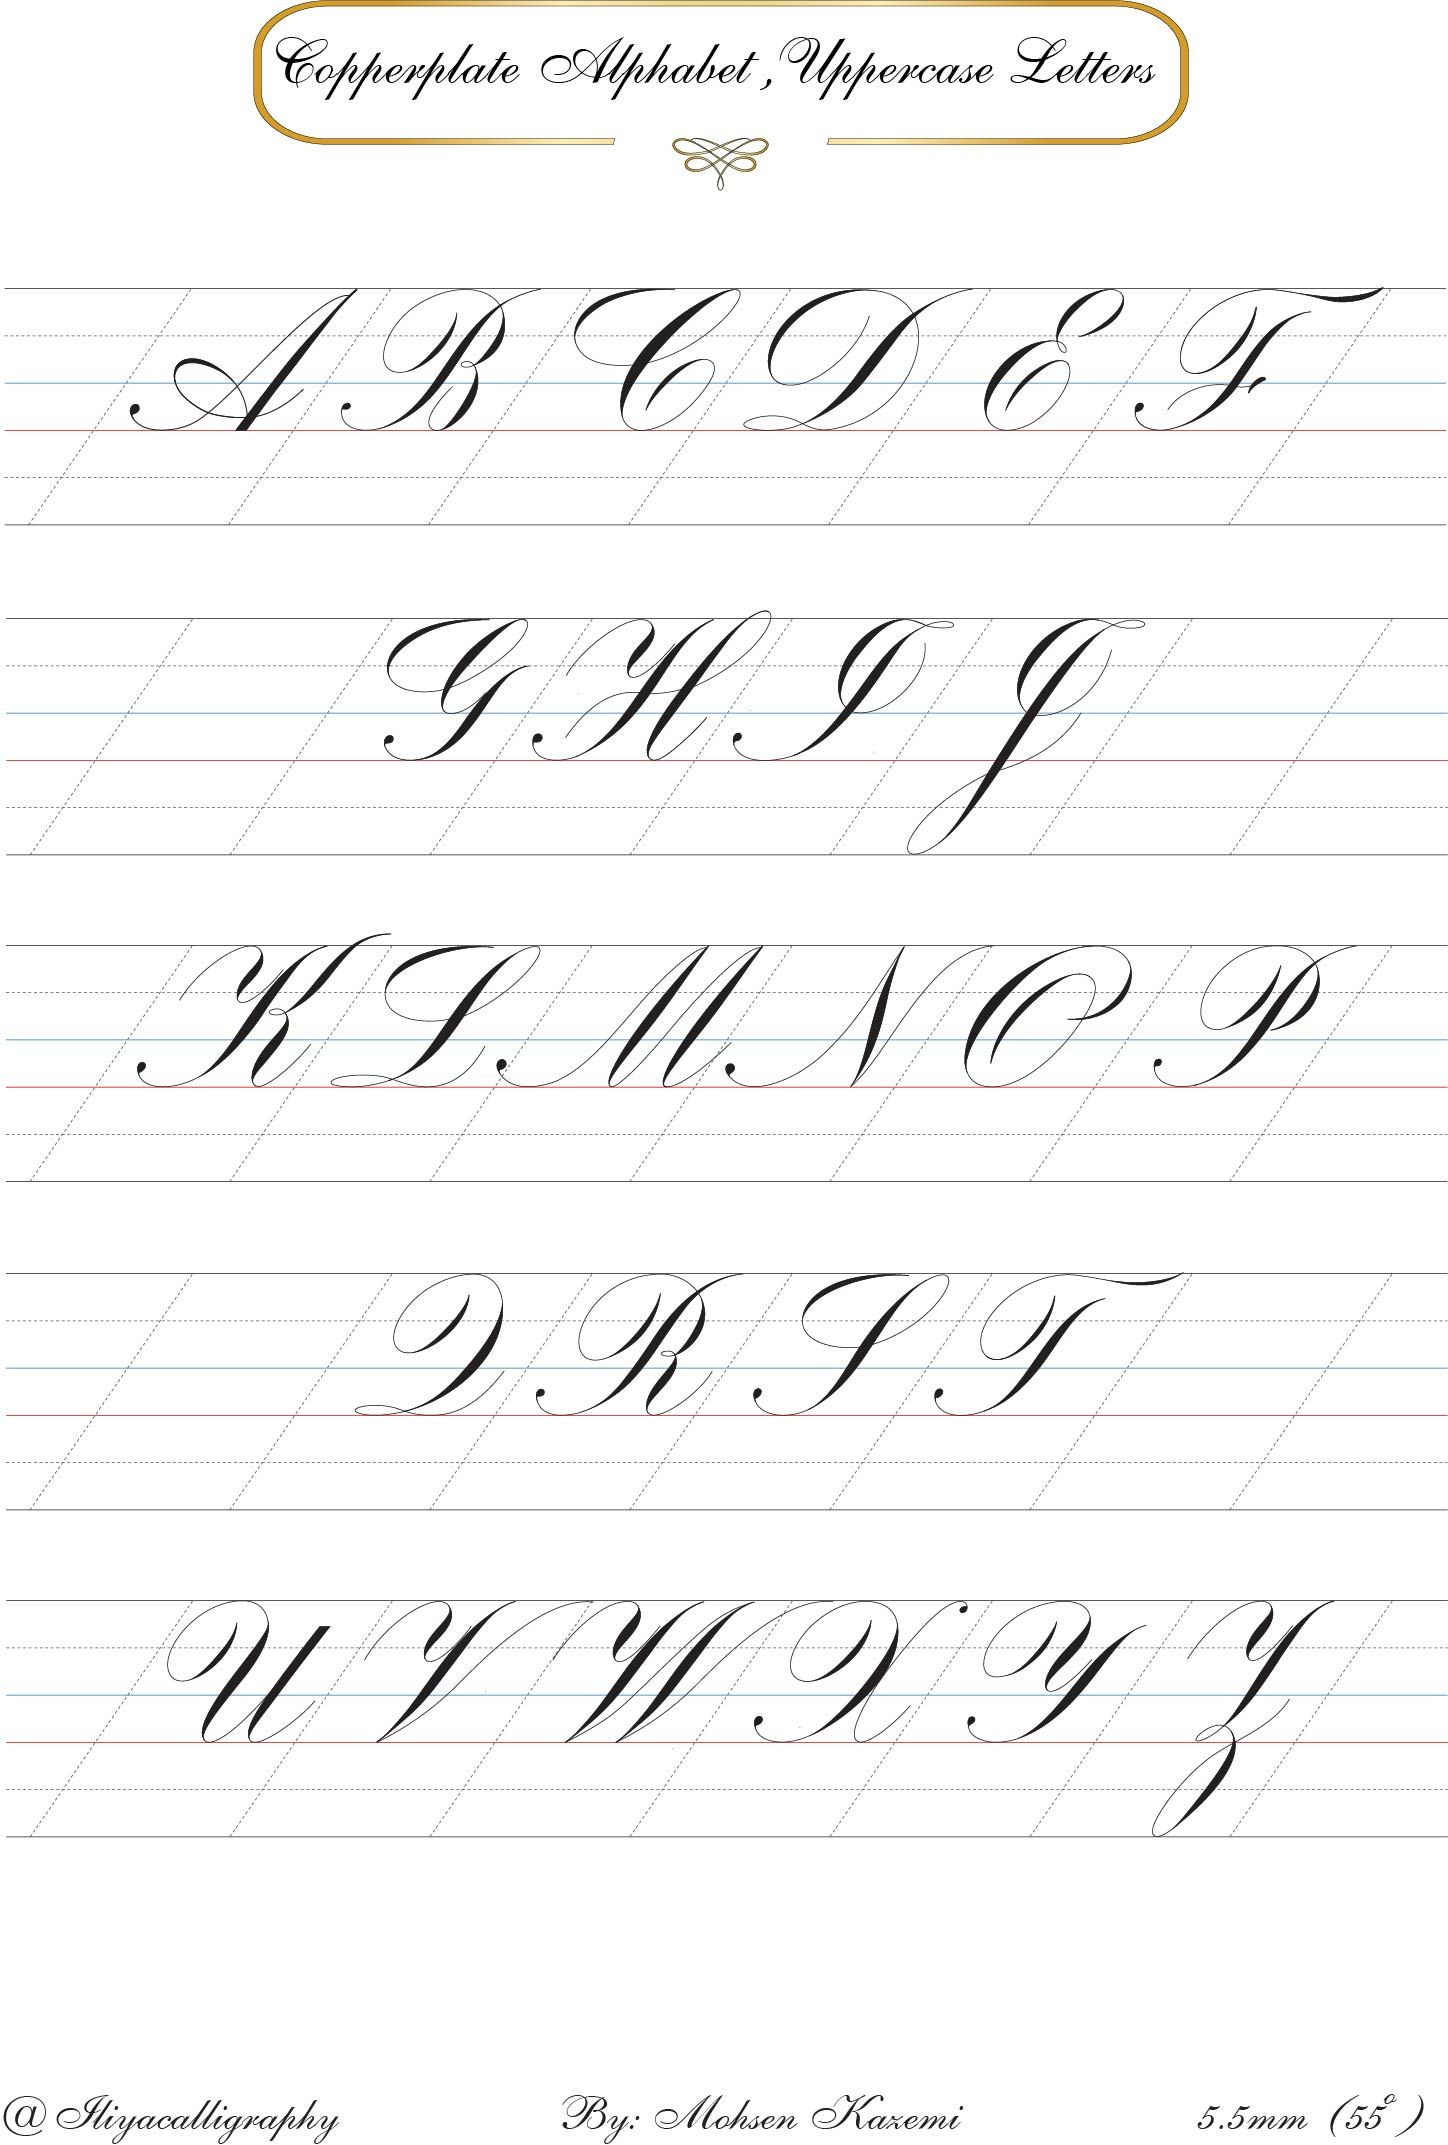 Copperplate Alphabet Copperplate Calligraphy Calligraphy Letters Hand Lettering Alphabet